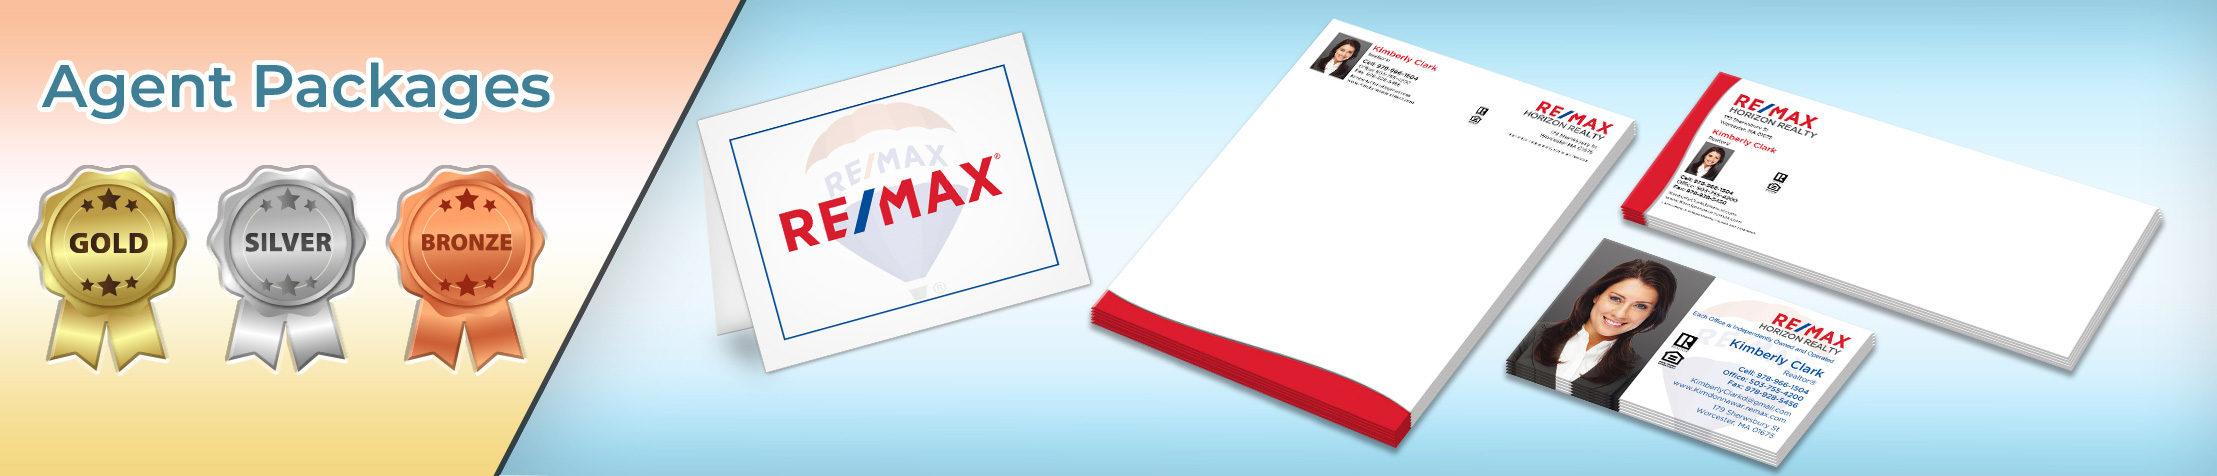 RE/MAX Real Estate Gold, Silver and Bronze Agent Packages - RE/MAX personalized business cards, letterhead, envelopes and note cards | BestPrintBuy.com